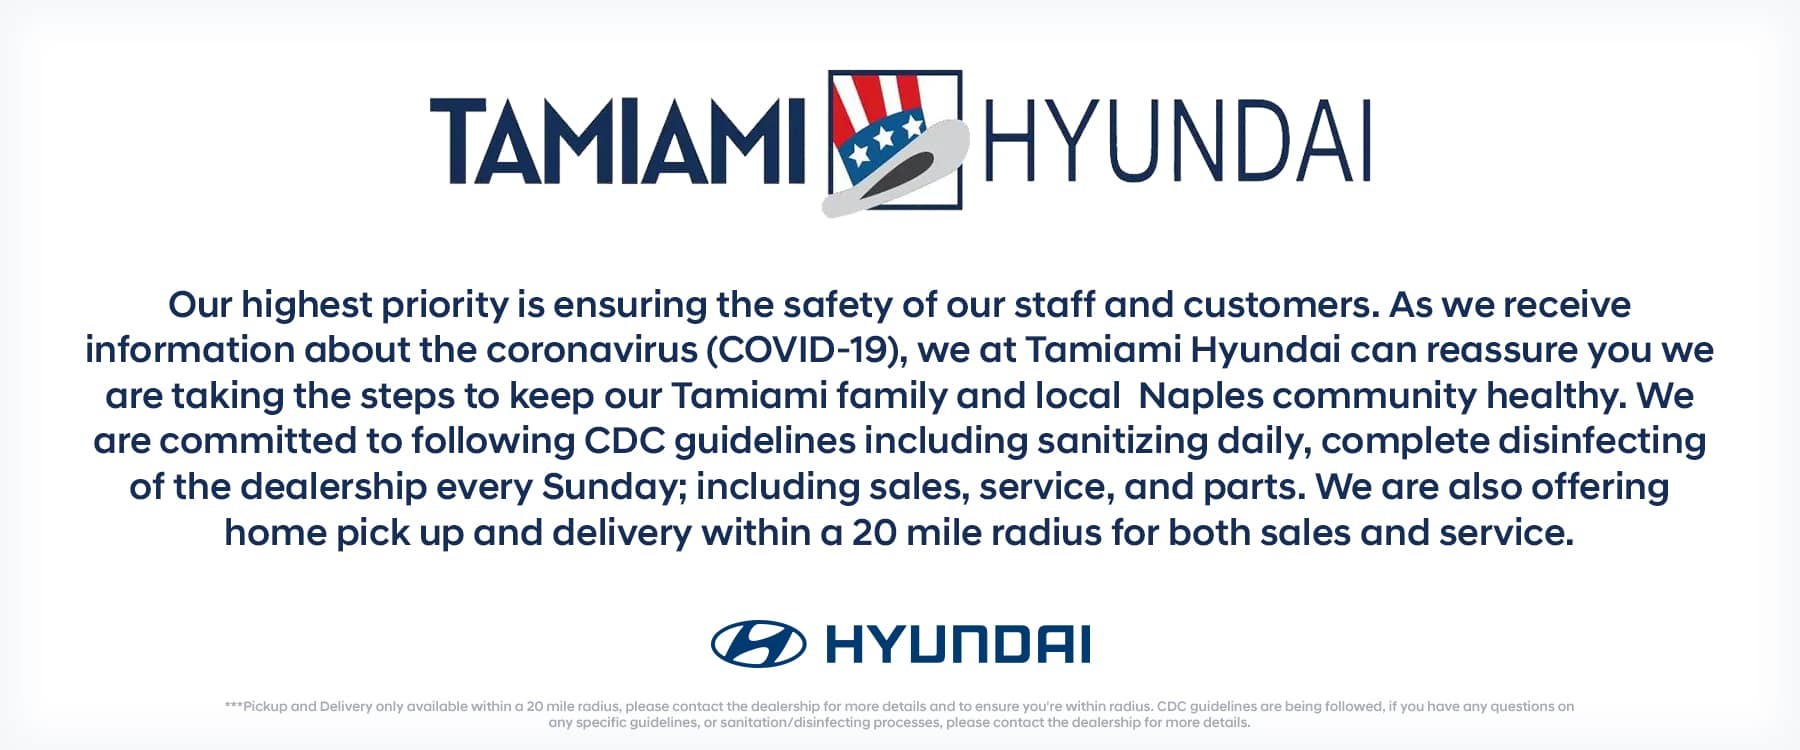 Our highest priority is ensuring the safety of our staff and customers. As we receive information about the Coronavirus (Covid-19), we at Tamiami Hyundai can assure you we are taking the steps to keep our Tamiami family and local Naples community healthy. We are committed to following CDC guidelines, including sanitizing daily and complete disinfecting of the dealership every Sunday. We are also offering home pick up and delivery within a 20 mile radius for both sales and service. ***Pickup and Delivery only available within a 20 mile radius, please contact the dealership for more details and to ensure you're within radius. CDC guidelines are being followed, if you have any questions on any specific guidelines, or sanitation/disinfecting processes, please contact the dealership for more details.